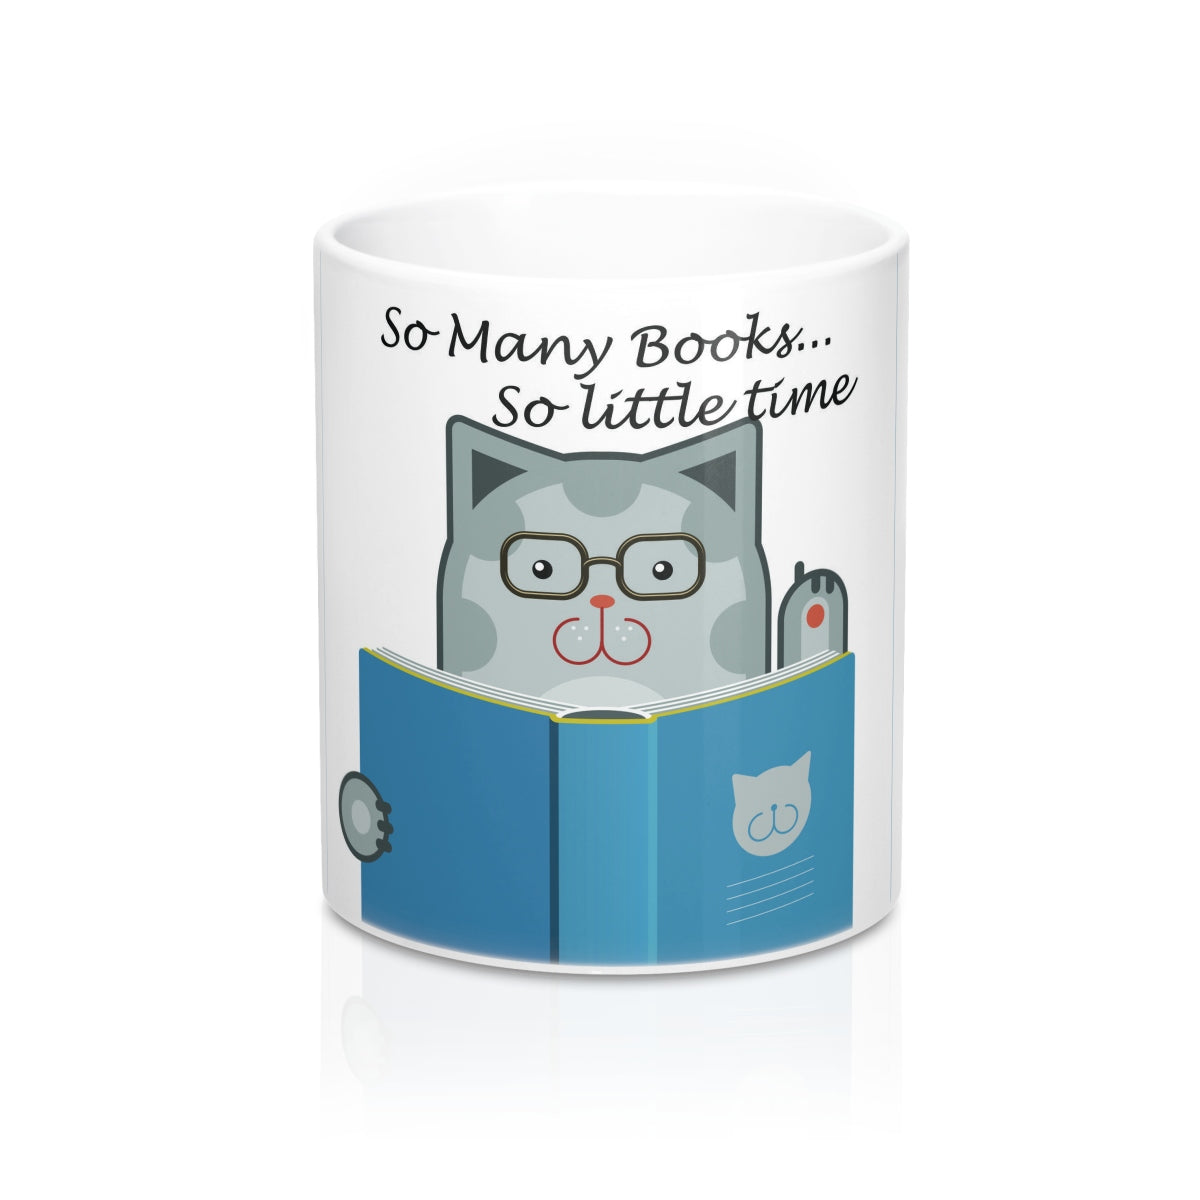 The Cat Says - So Many Books, So Little Time